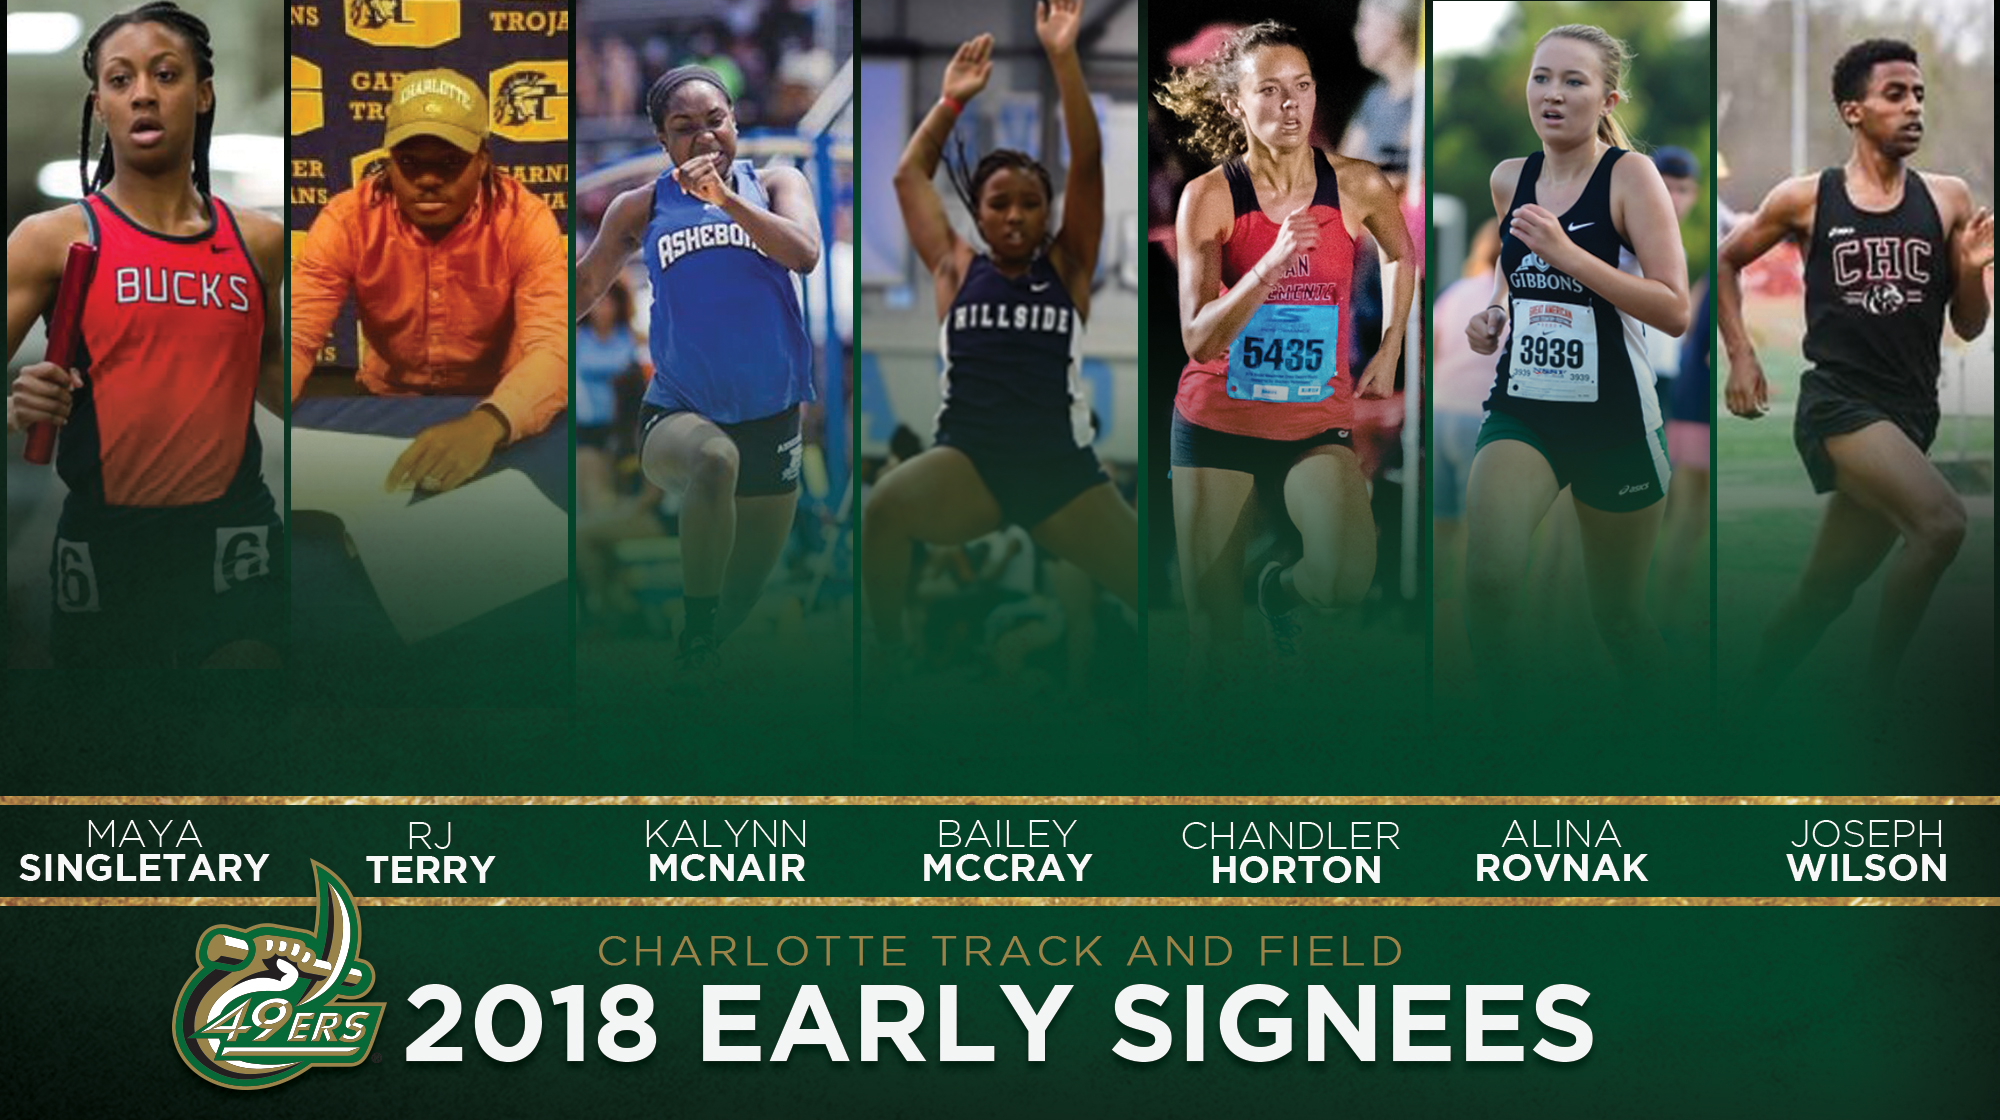 Track & Field inks seven athletes during early signing period - Charlotte